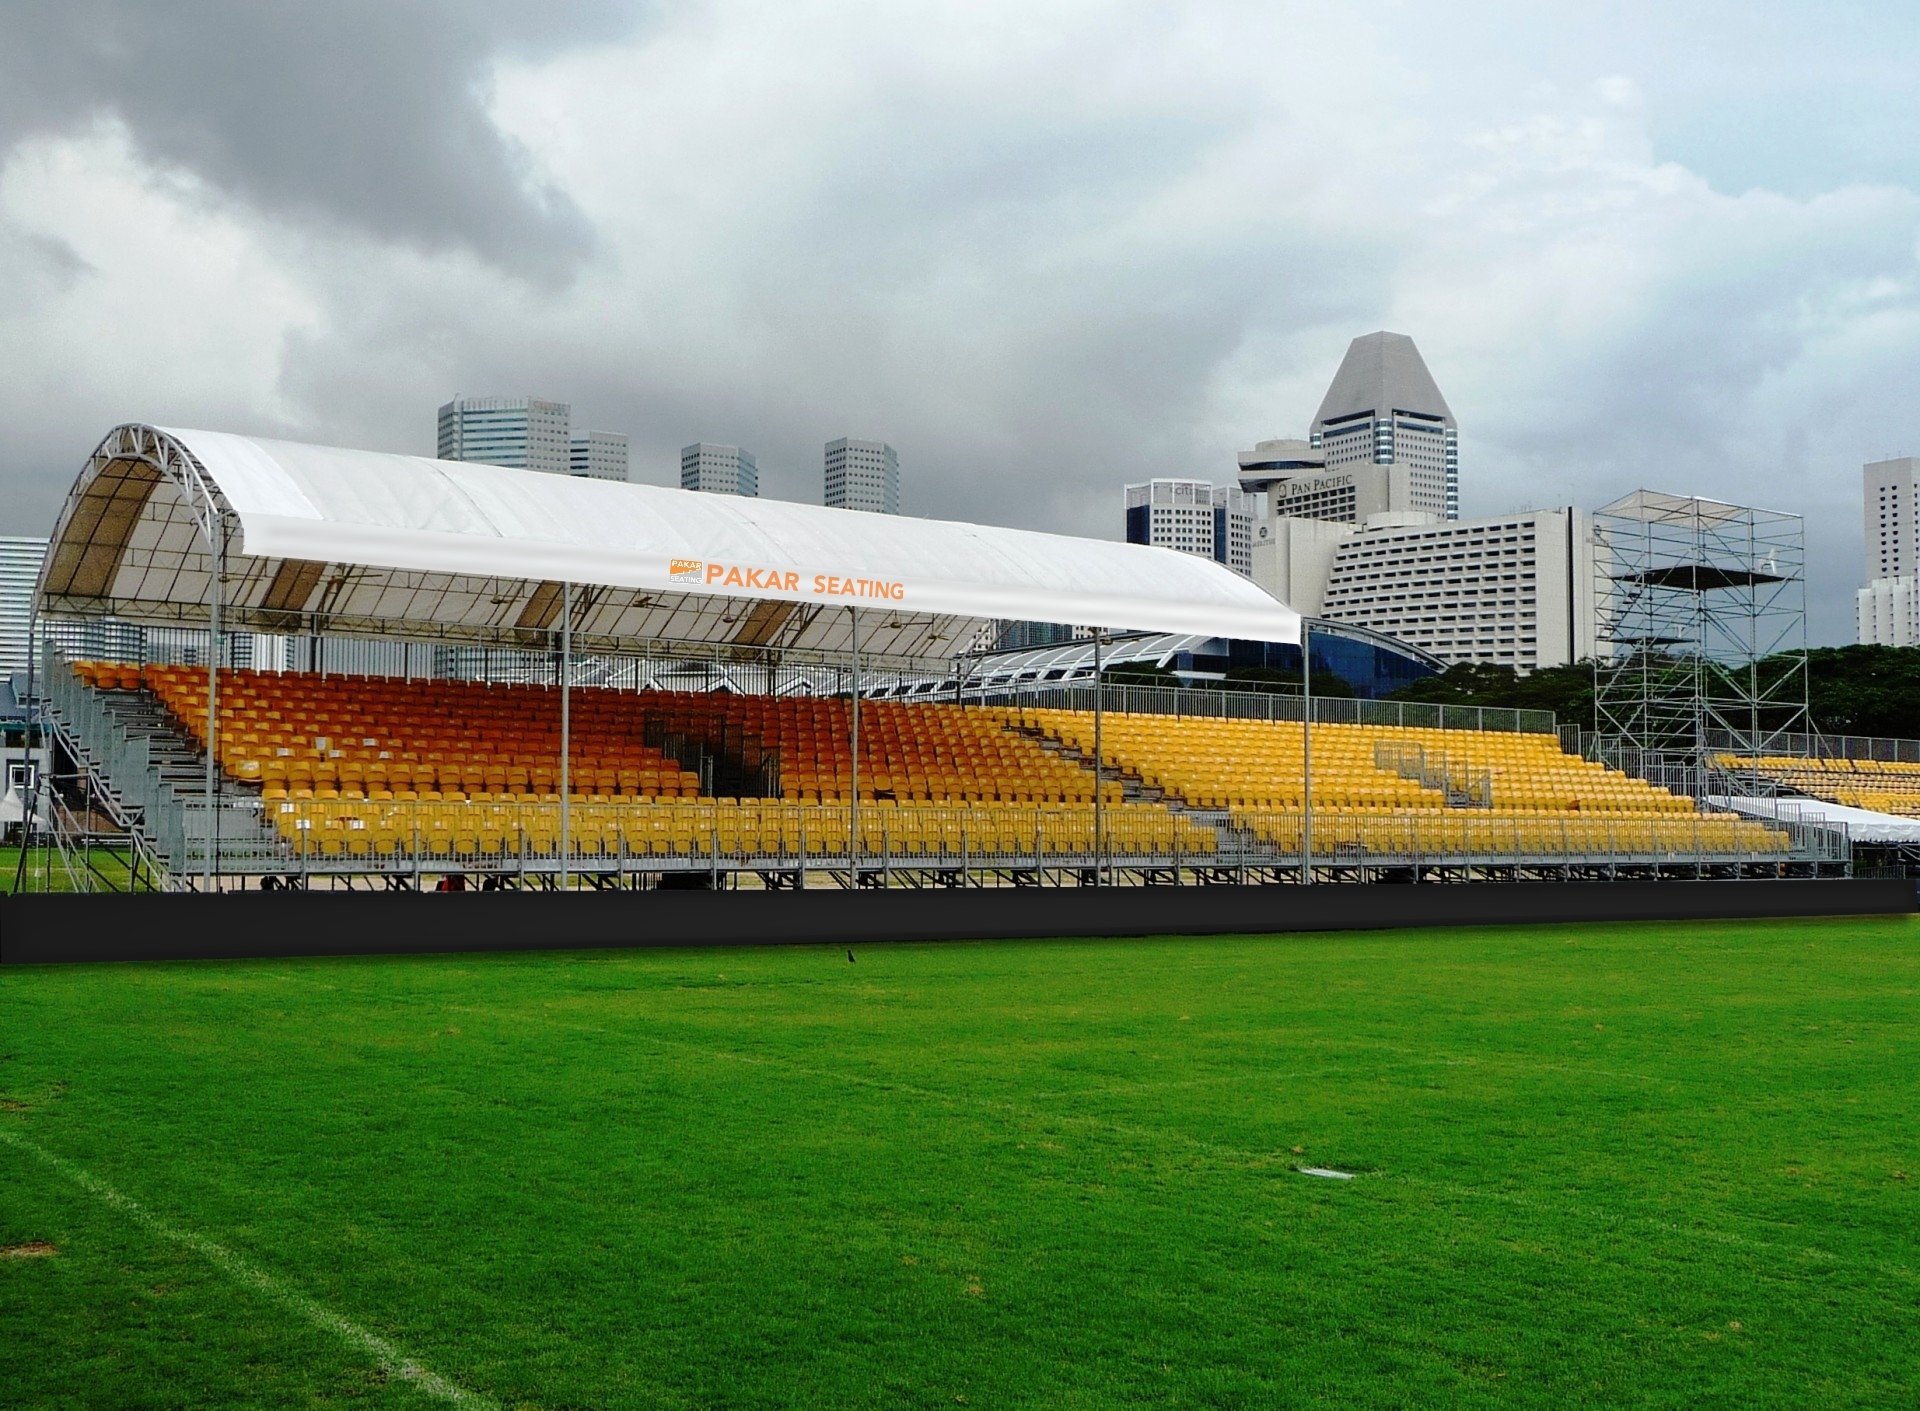 Pakar Grandstand with Pakar Roof